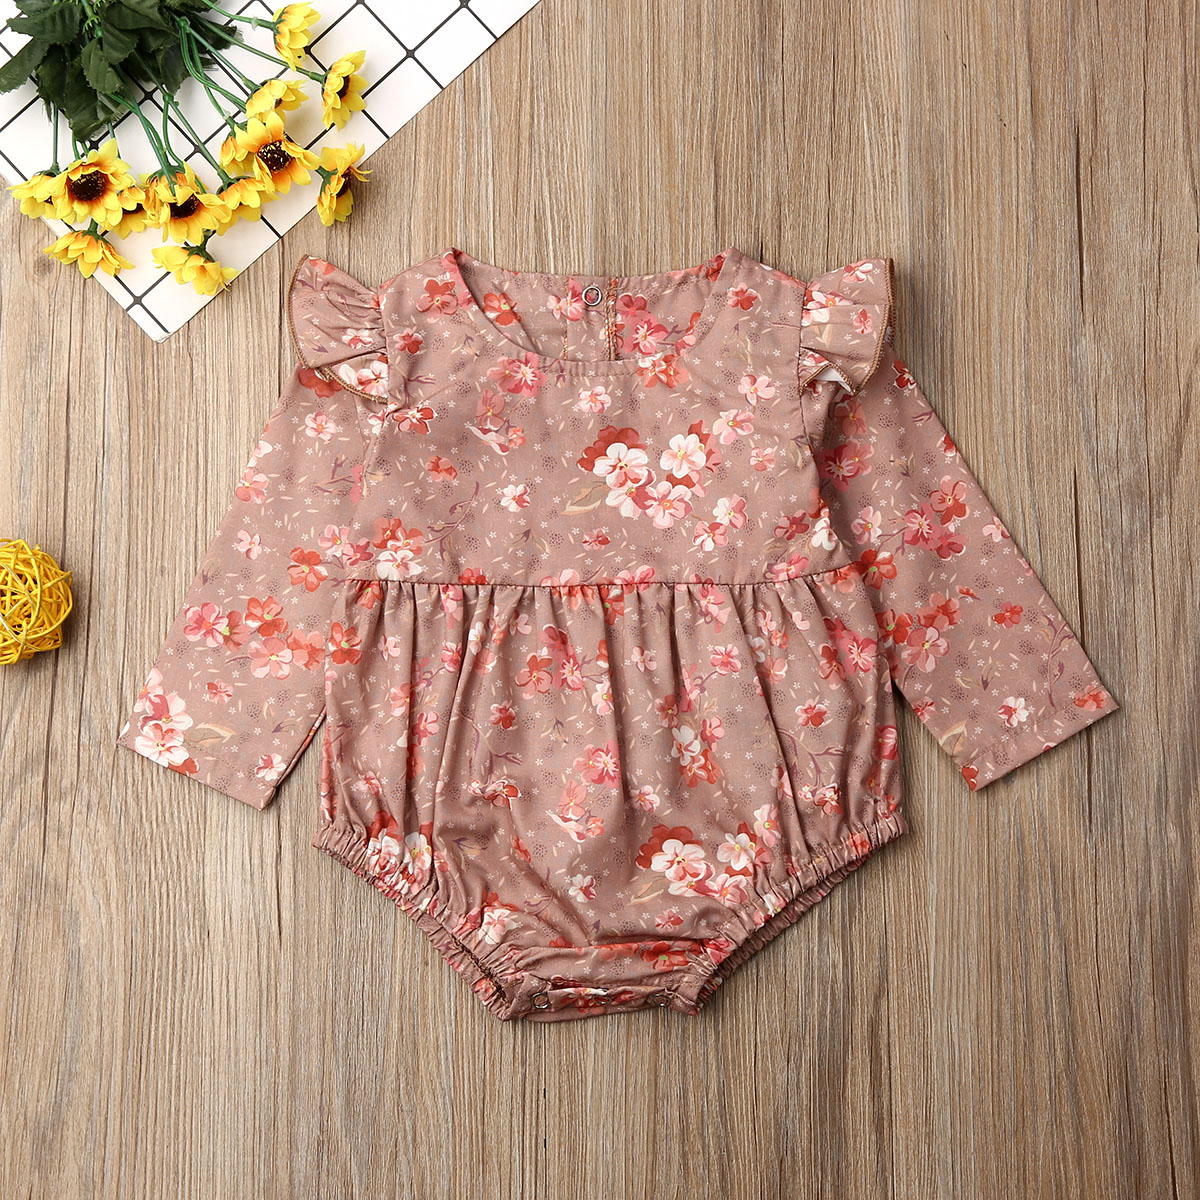 Pudcoco Newborn Baby Girl Clothes Flower Print Long Sleeve Cotton Romper Jumpsuit One-Piece Outfit Overall Clothes